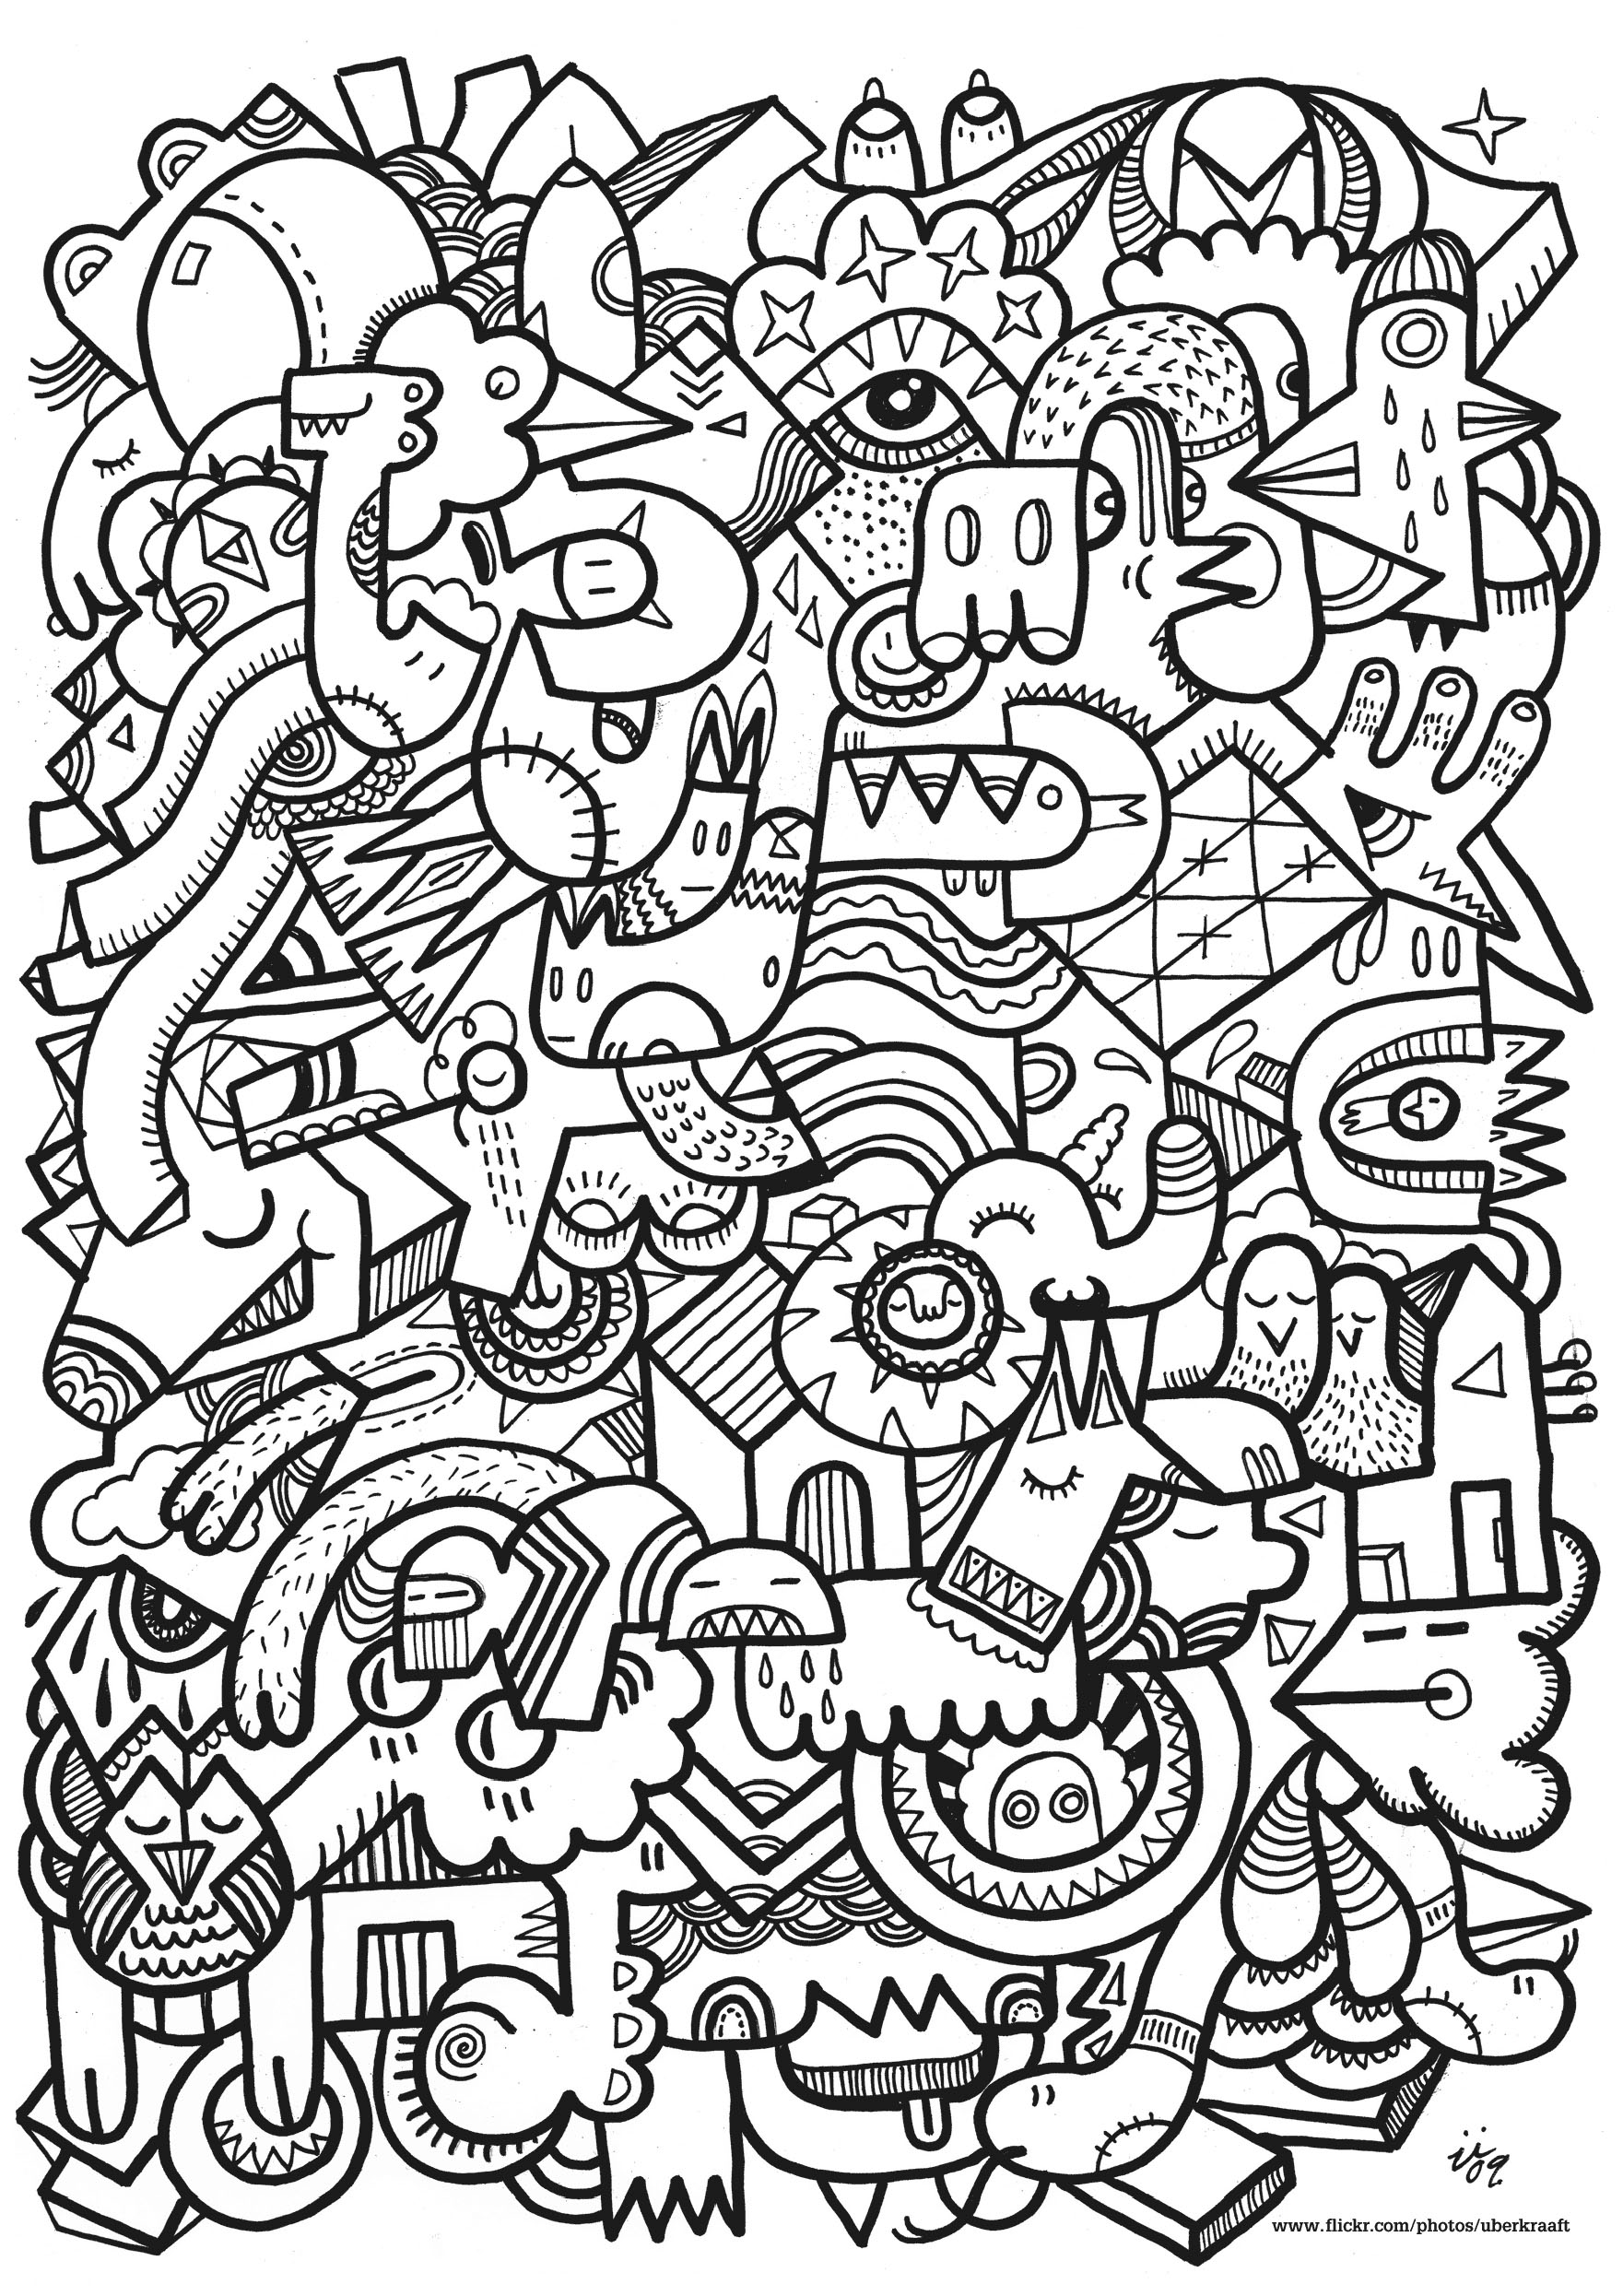 Doodling Doodle Art 7 Doodles Coloriages Difficiles Pour Adultes